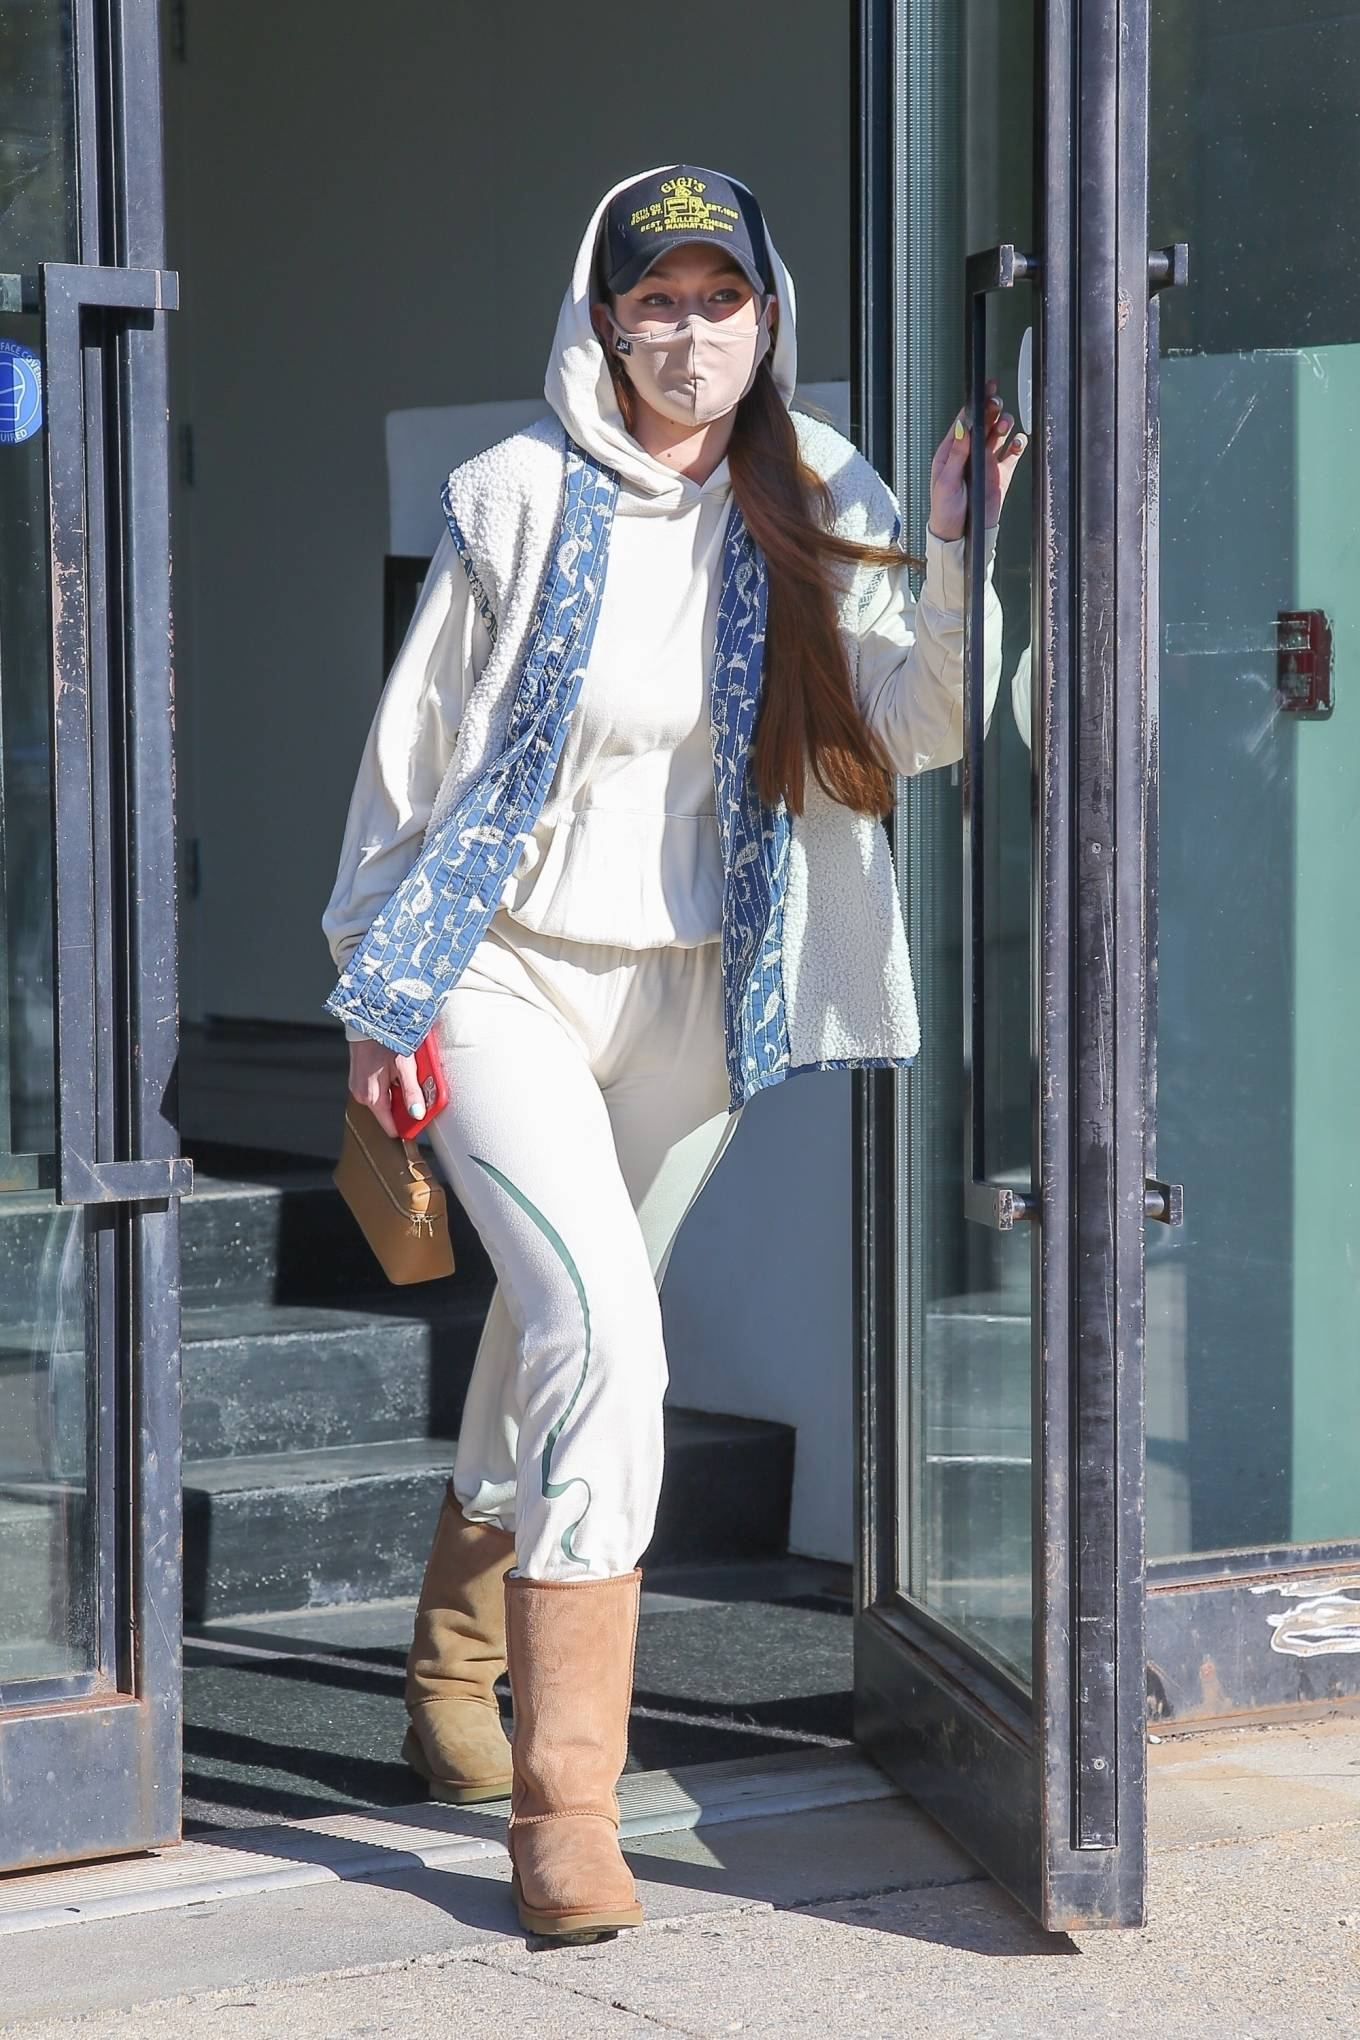 Gigi Hadid donning round chestnut brown Ugg knee high boots with flat heel